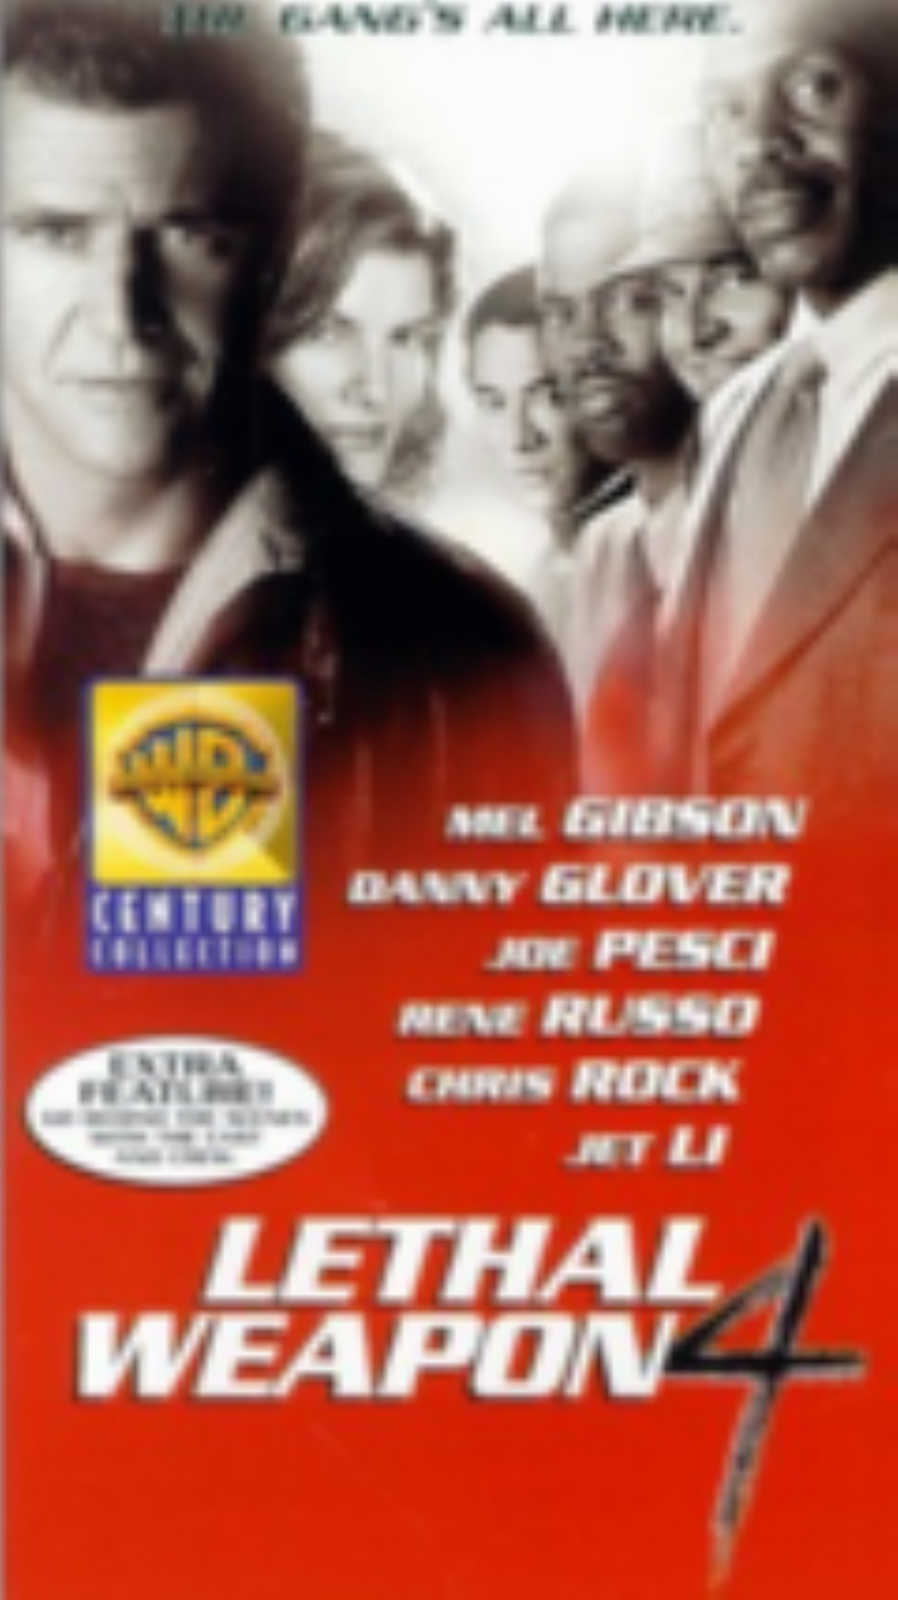 Lethal Weapon 4 Vhs